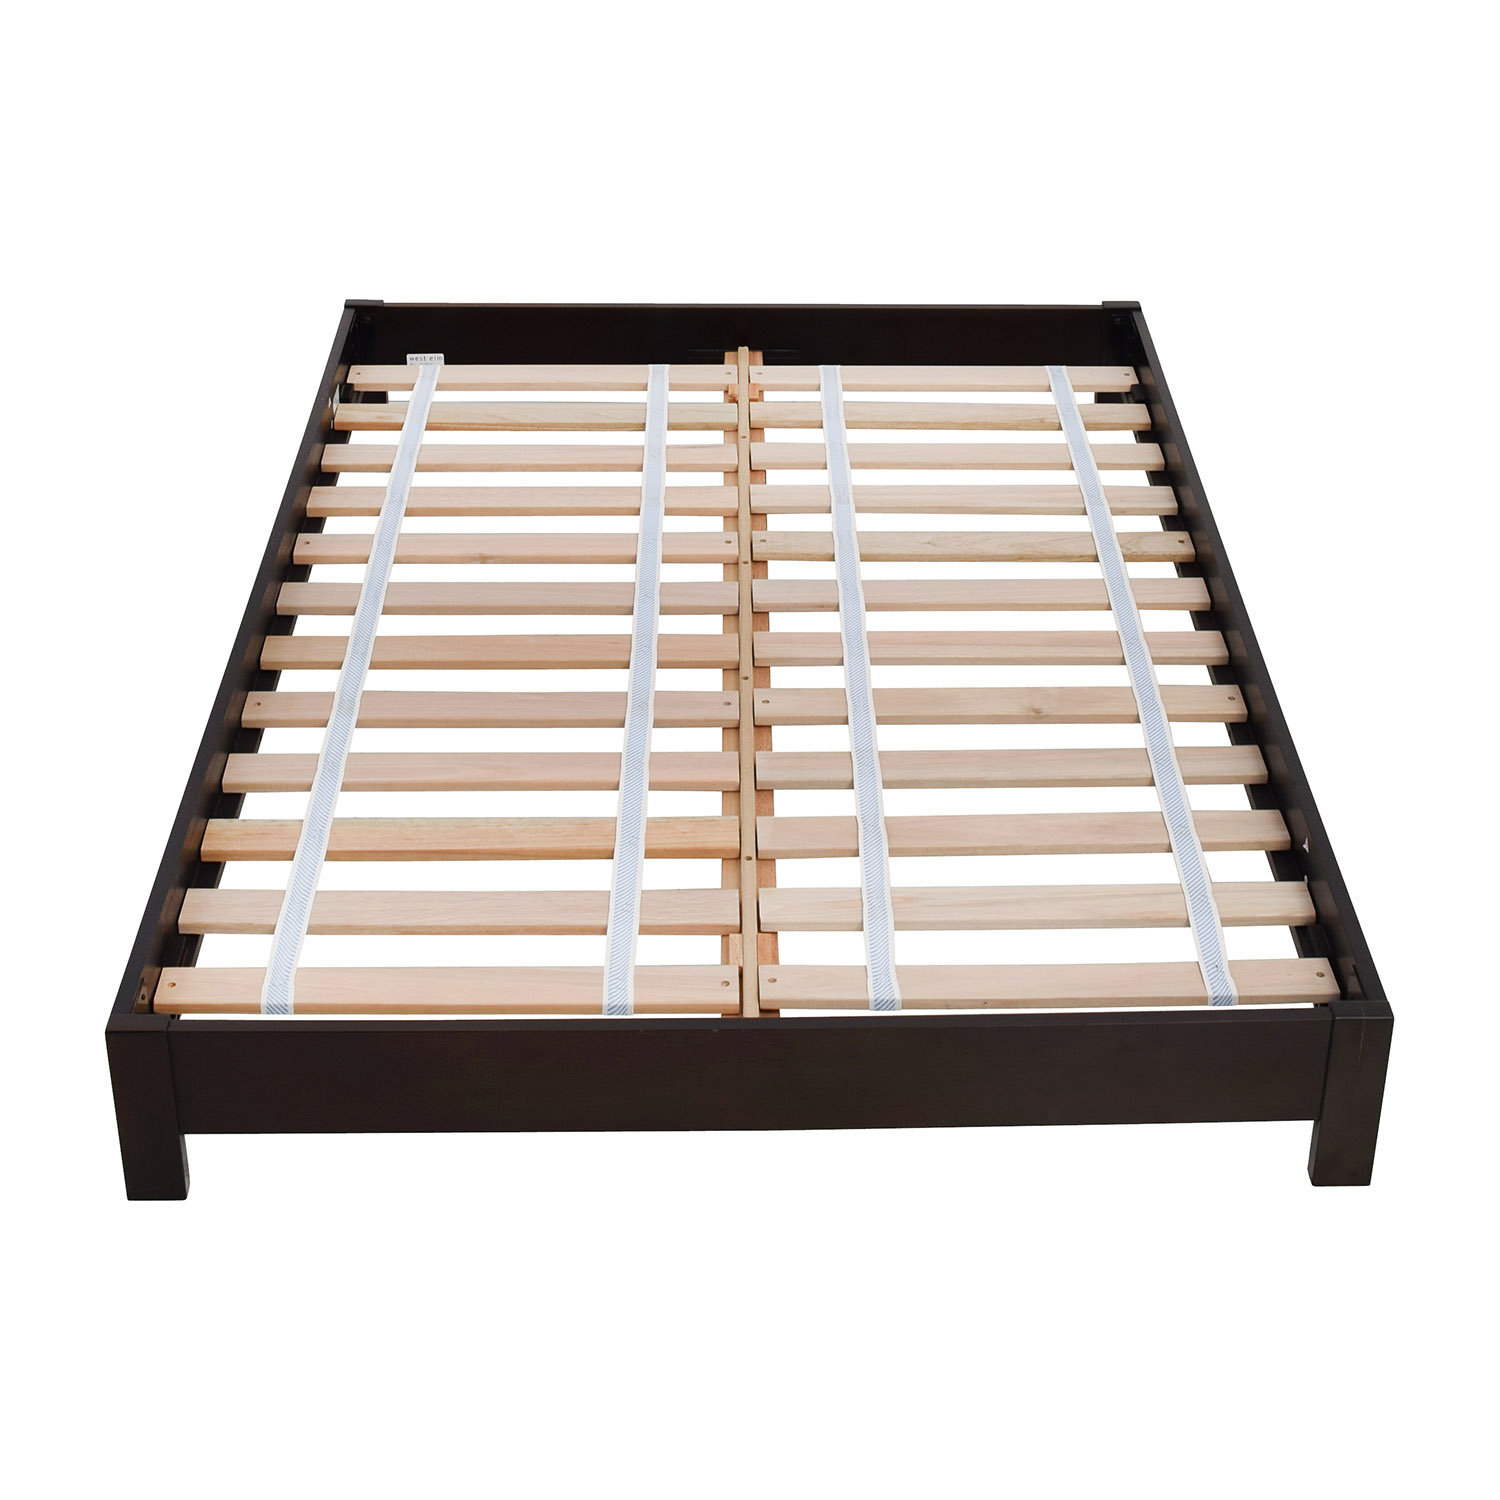 West Elm Simple Low Full Size Platform Bed Frame Beds